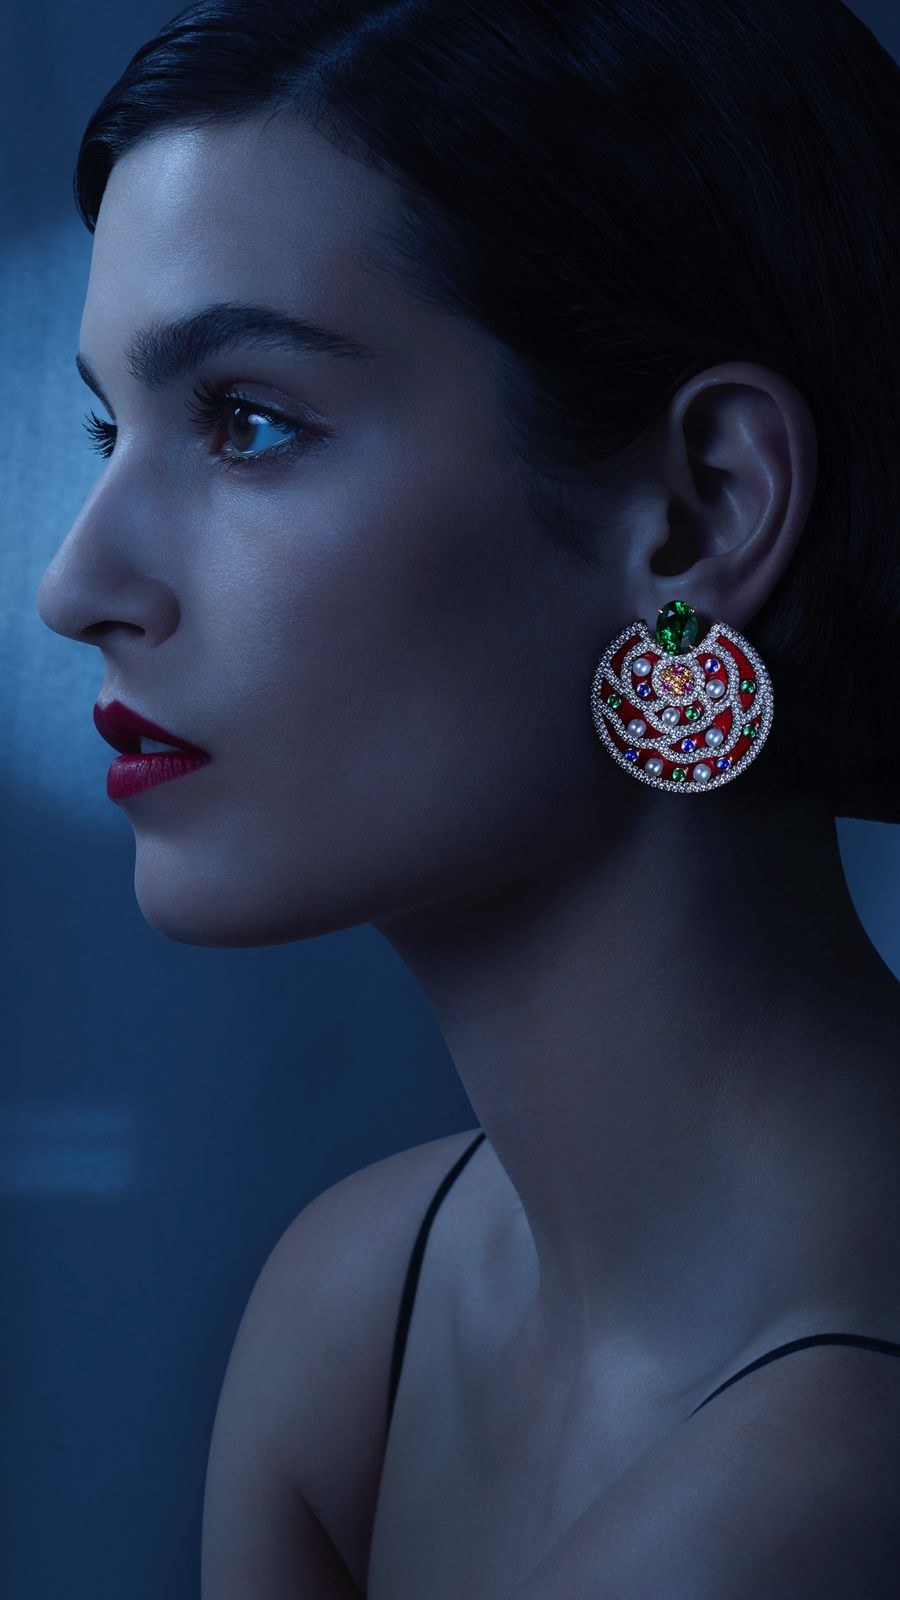 A model wearing the Folklore earrings